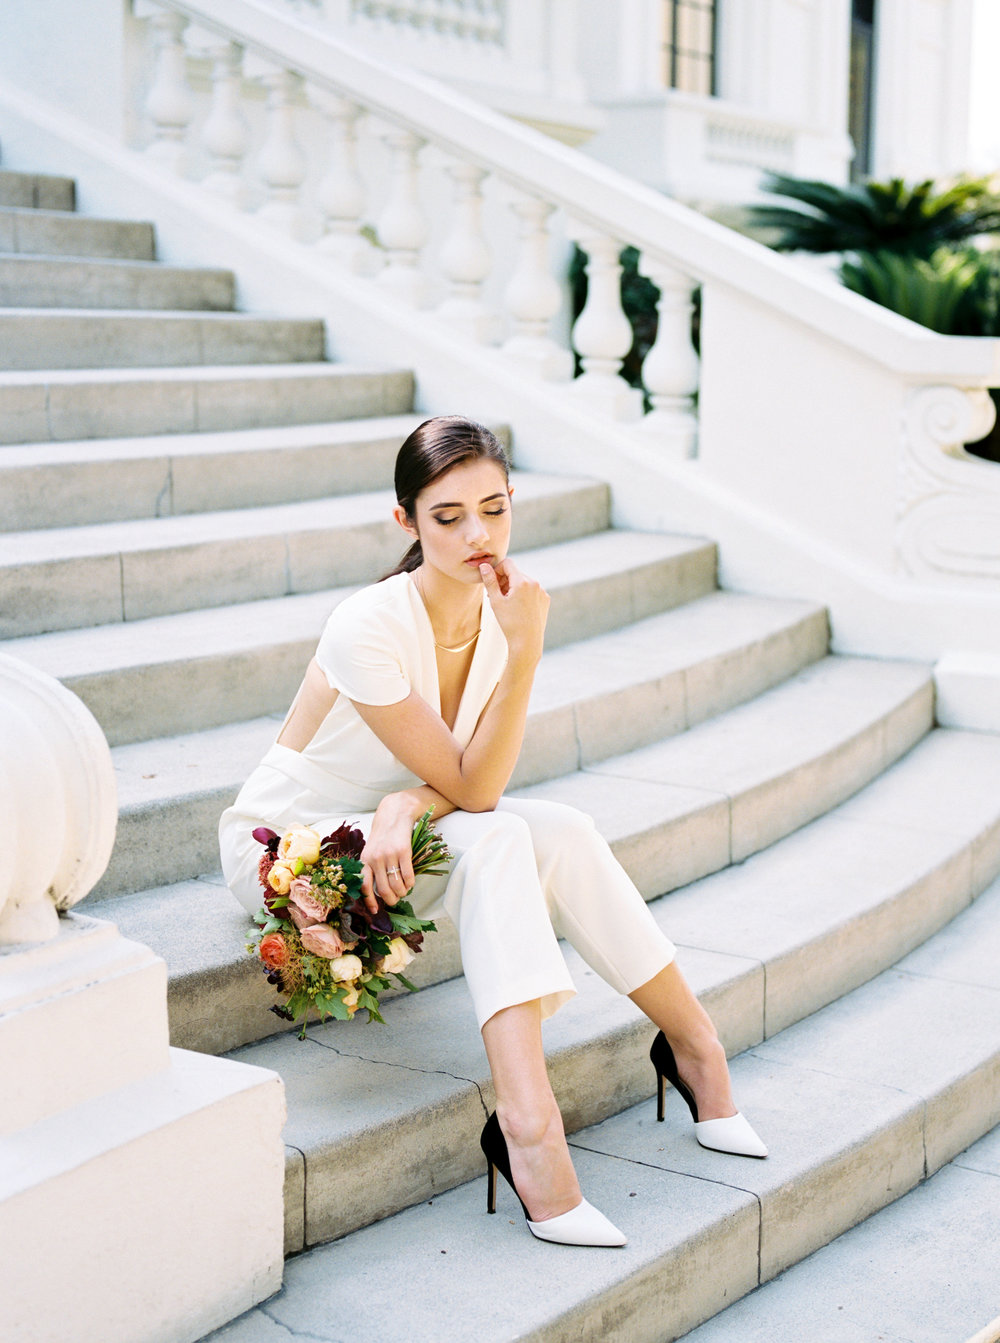 Bride wearing Delphine Manivet pantsuit for her private estate wedding in Pasadena, California